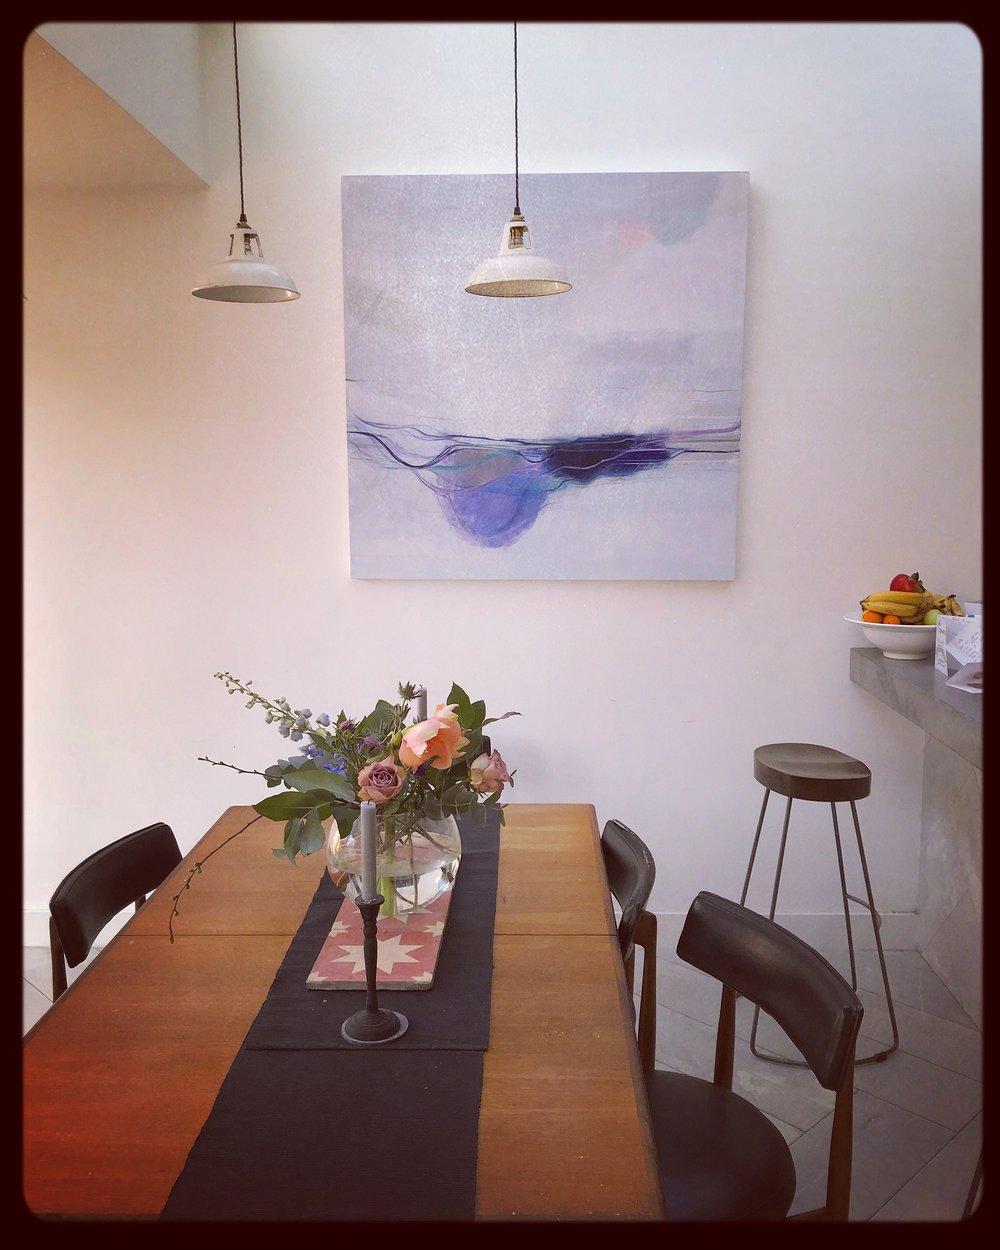 """It is gorgeous the way we can see different colours in the painting as the light changes throughout the day. We love it""    ""Head in the Clouds"" bespoke commission installed in client's home in London. The couple who bought it visited my studio, and then selected a piece I had started working on. We then developed it together, with me sending photos and updates, and getting their feedback. They were dream clients to work with. They were endlessly positive, and were great to collaborate with. They were able to say what elements they liked, and wanted developing. It was a lovely project."